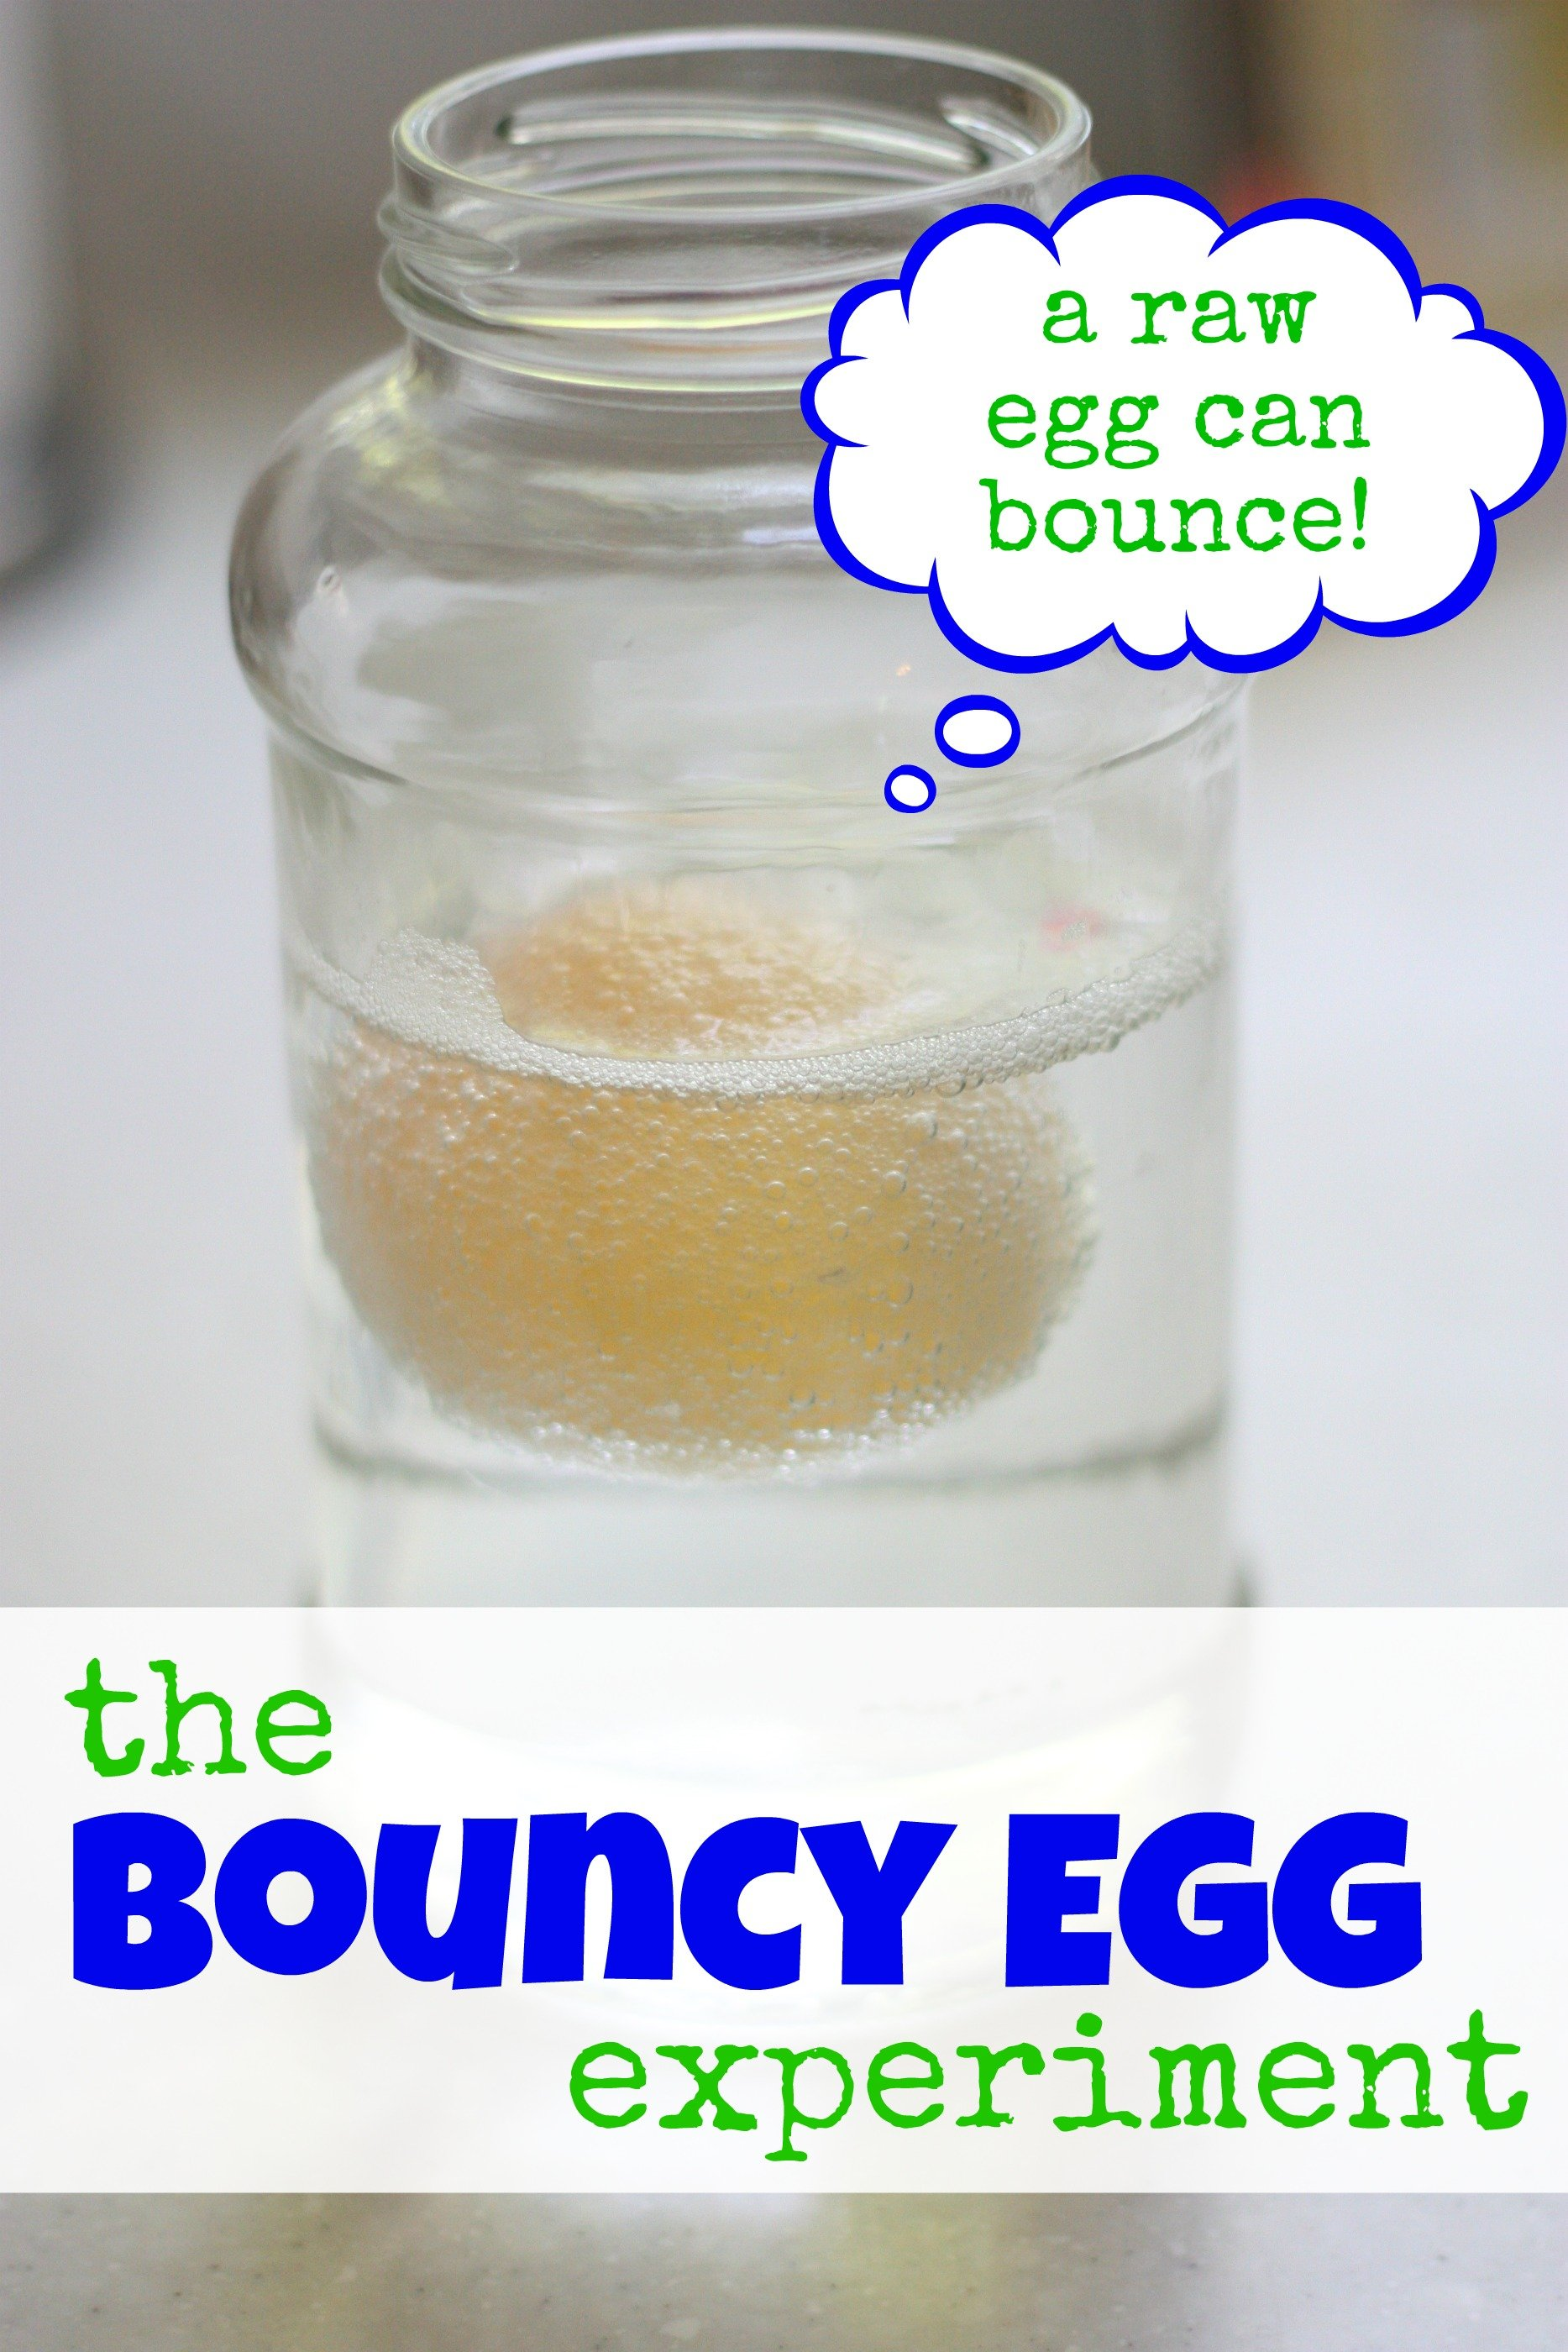 bouncey egg experiment Purpose the purpose of our experiment is to see which type and size of egg (that has been soaked in vinegar) will bounce higher materials 1 phone (1.